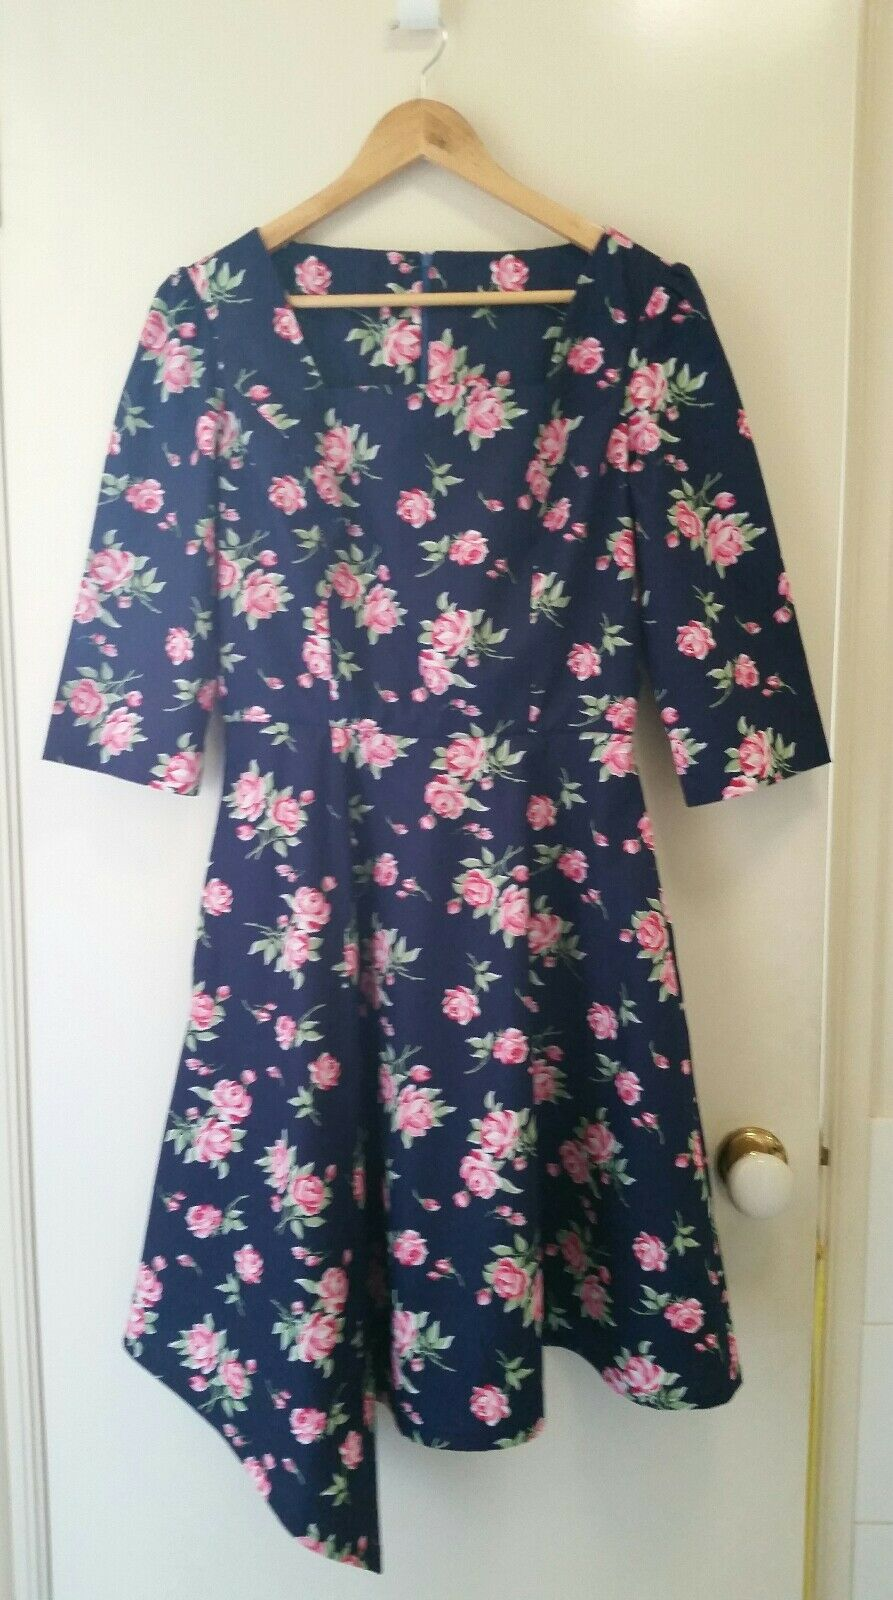 NEw Vintage inspired peony pink fit and flare dress, size 10-12